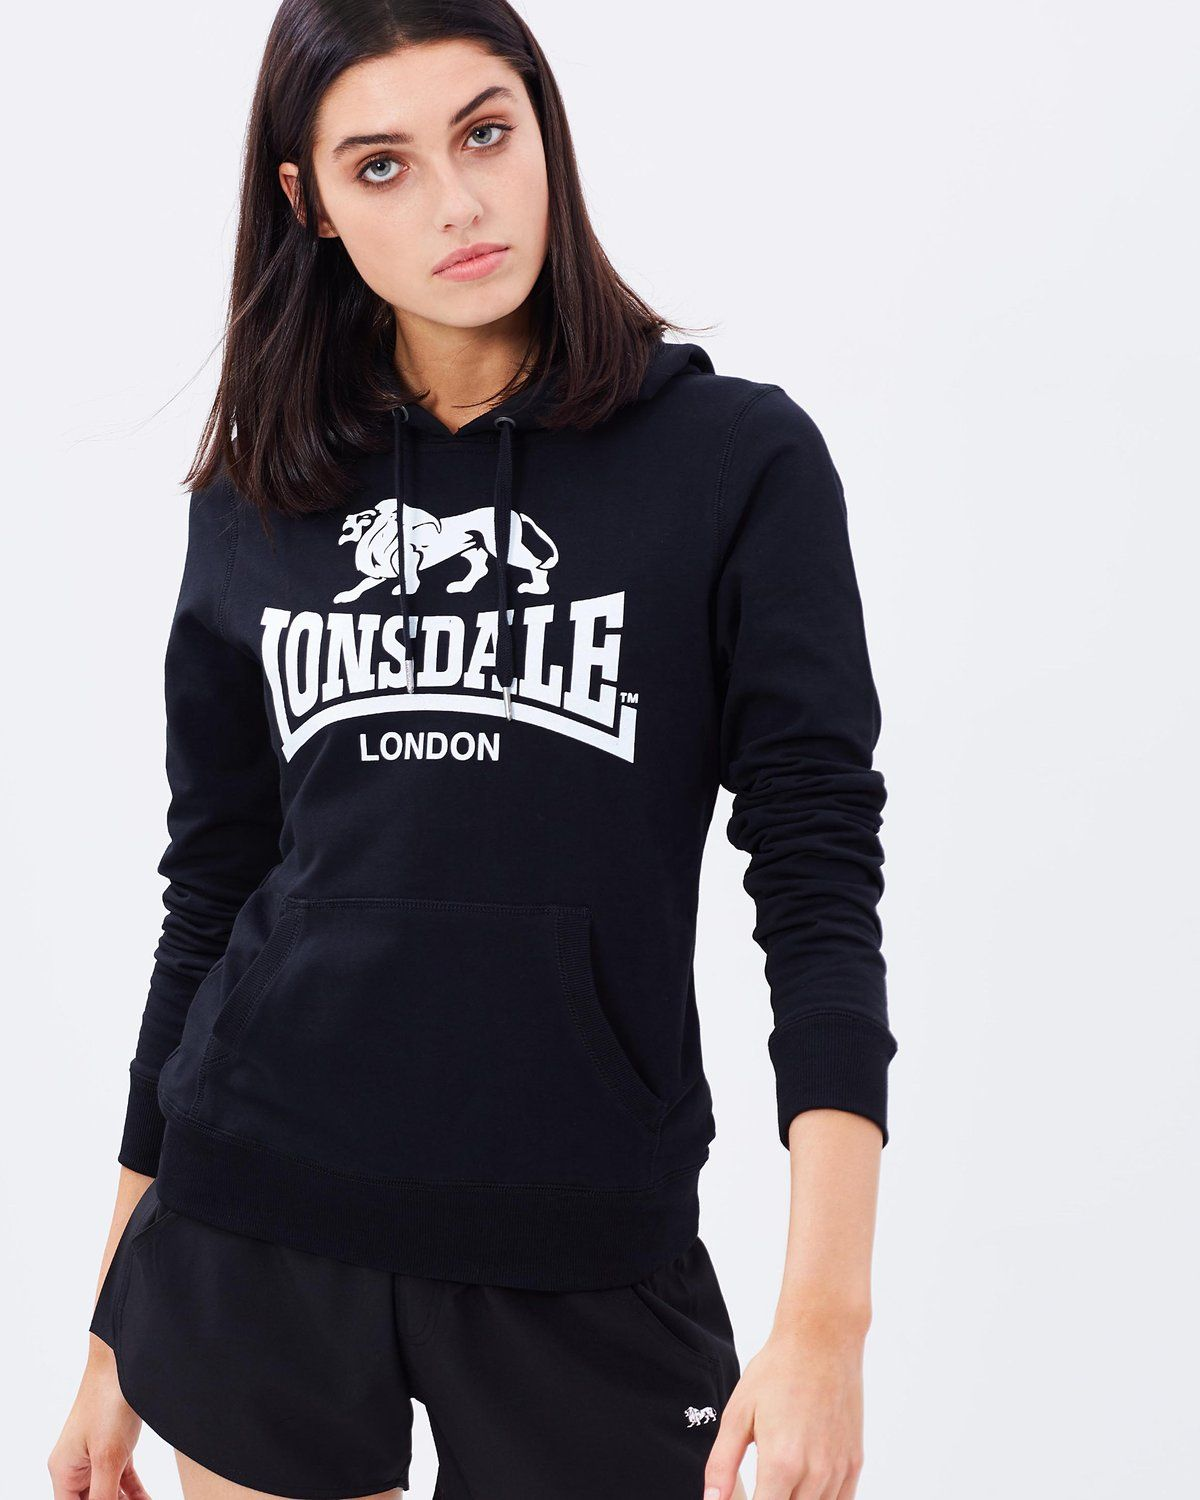 Pin On Lonsdale